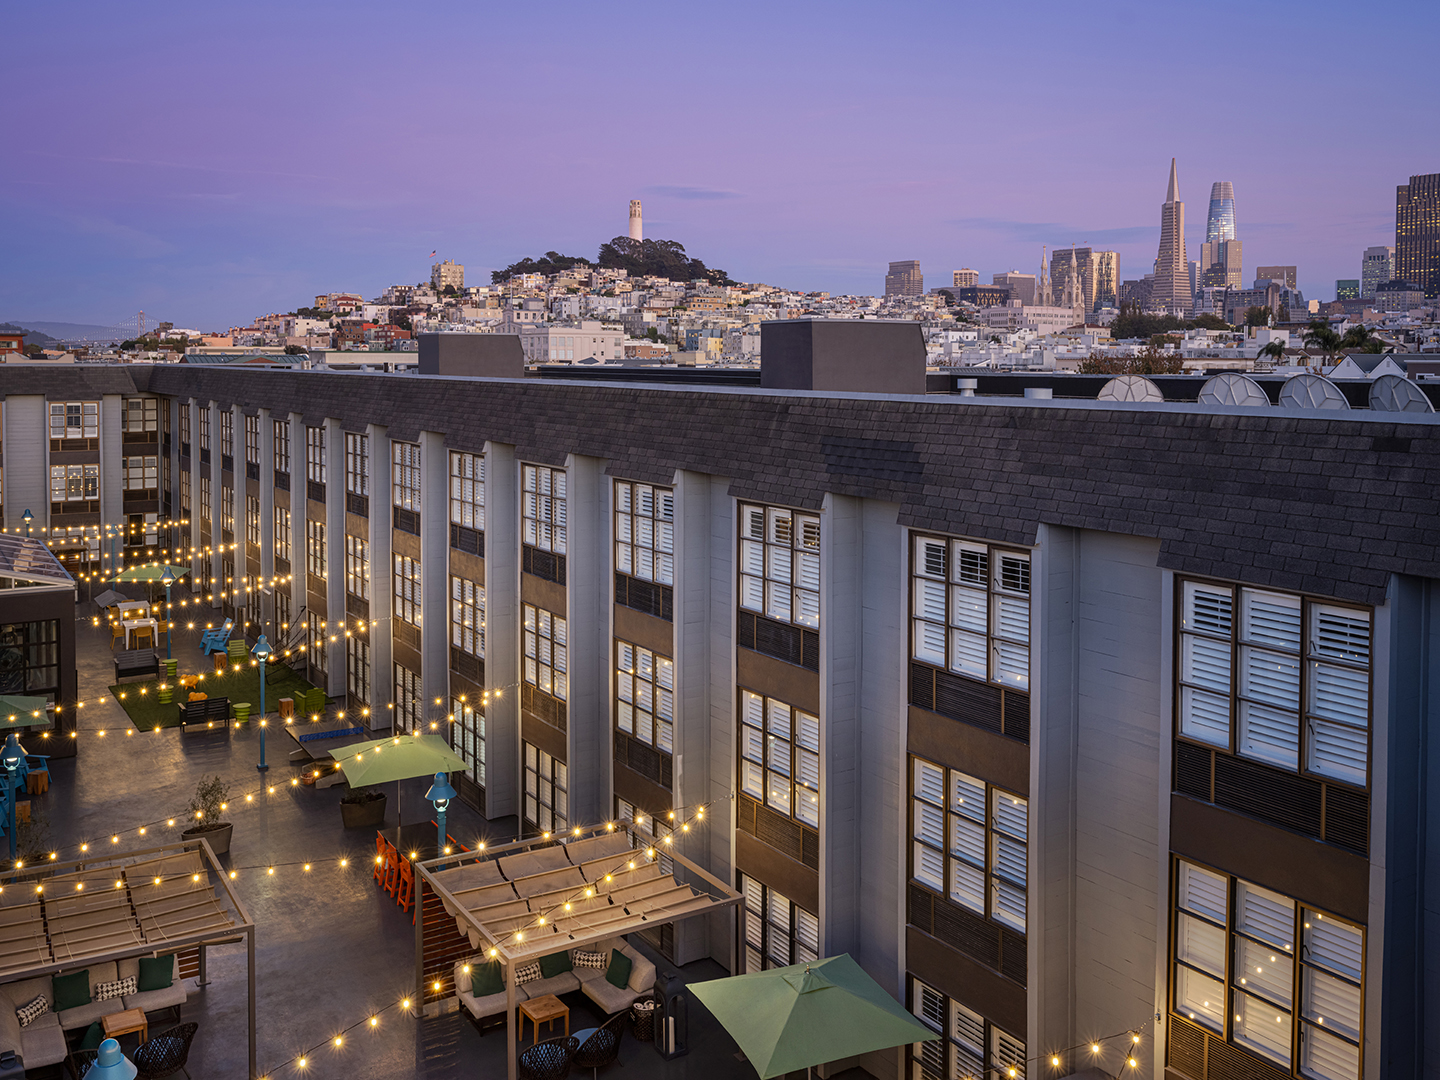 Marriott Vacation Club Pulse<span class='trademark'>®</span>, San Francisco Courtyard. Marriott Vacation Club Pulse<span class='trademark'>®</span>, San Francisco is located in San Francisco, California United States.